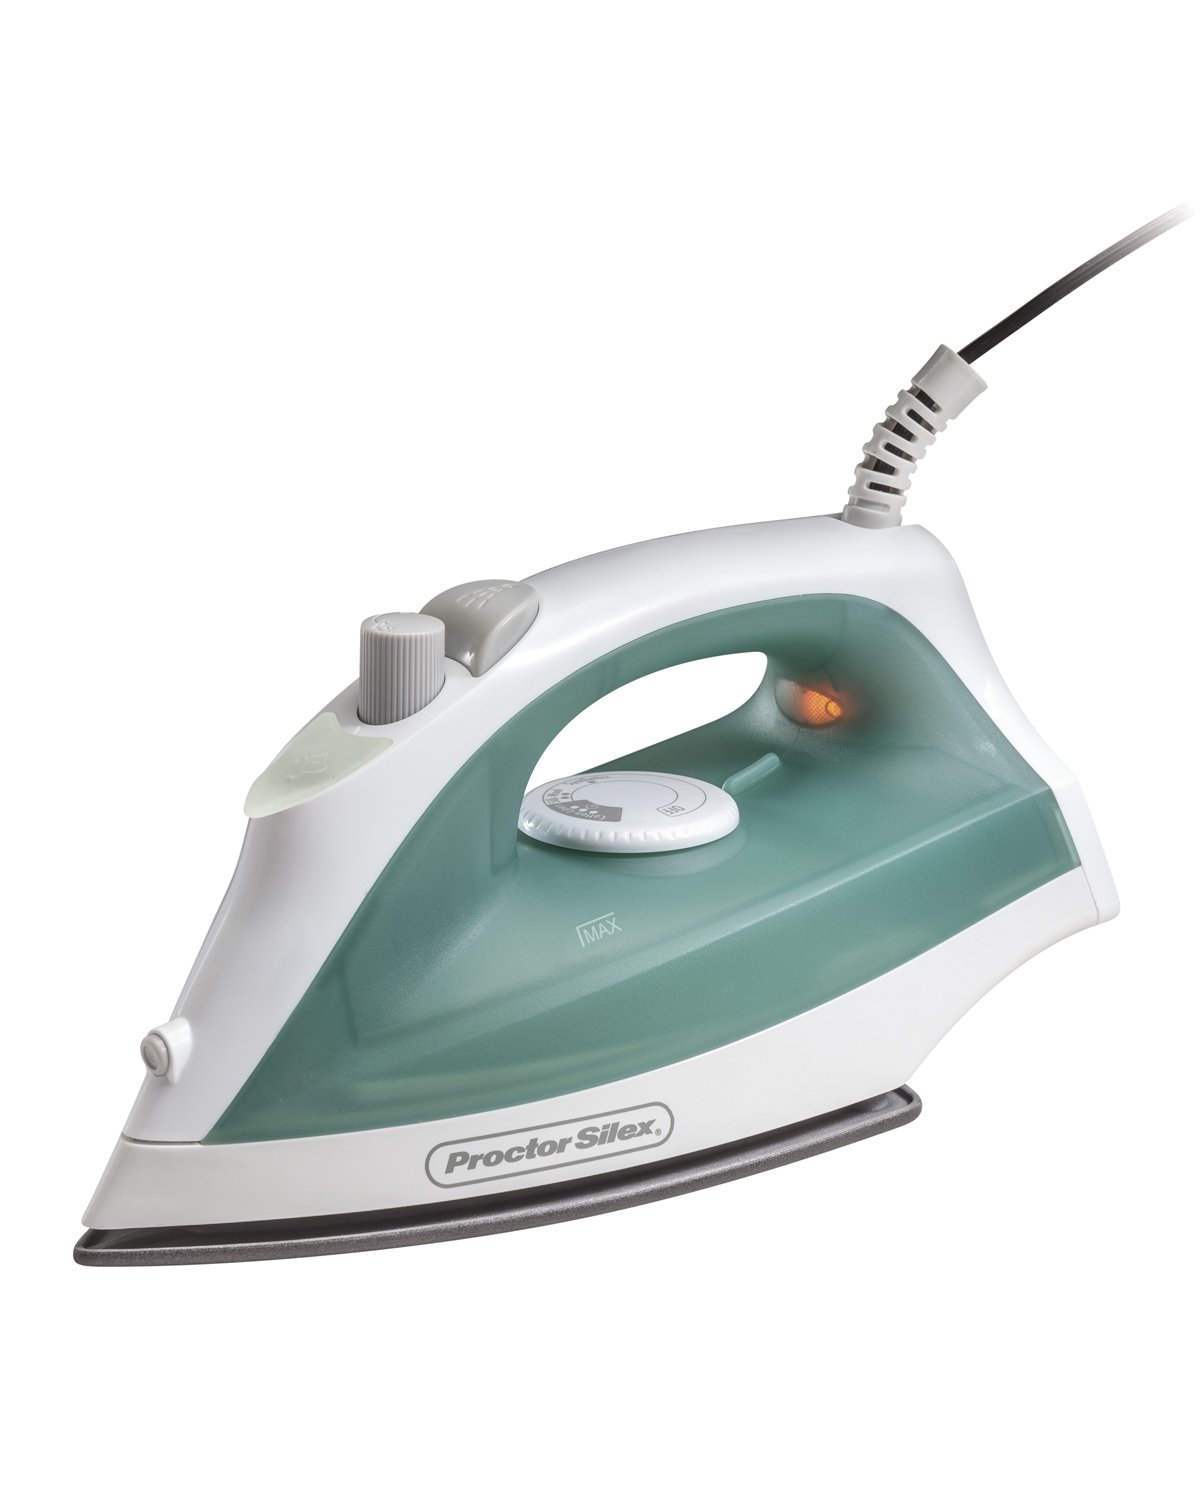 Proctor Silex 17291R Durable Iron with Nonstick Soleplate and Adjustable Steam